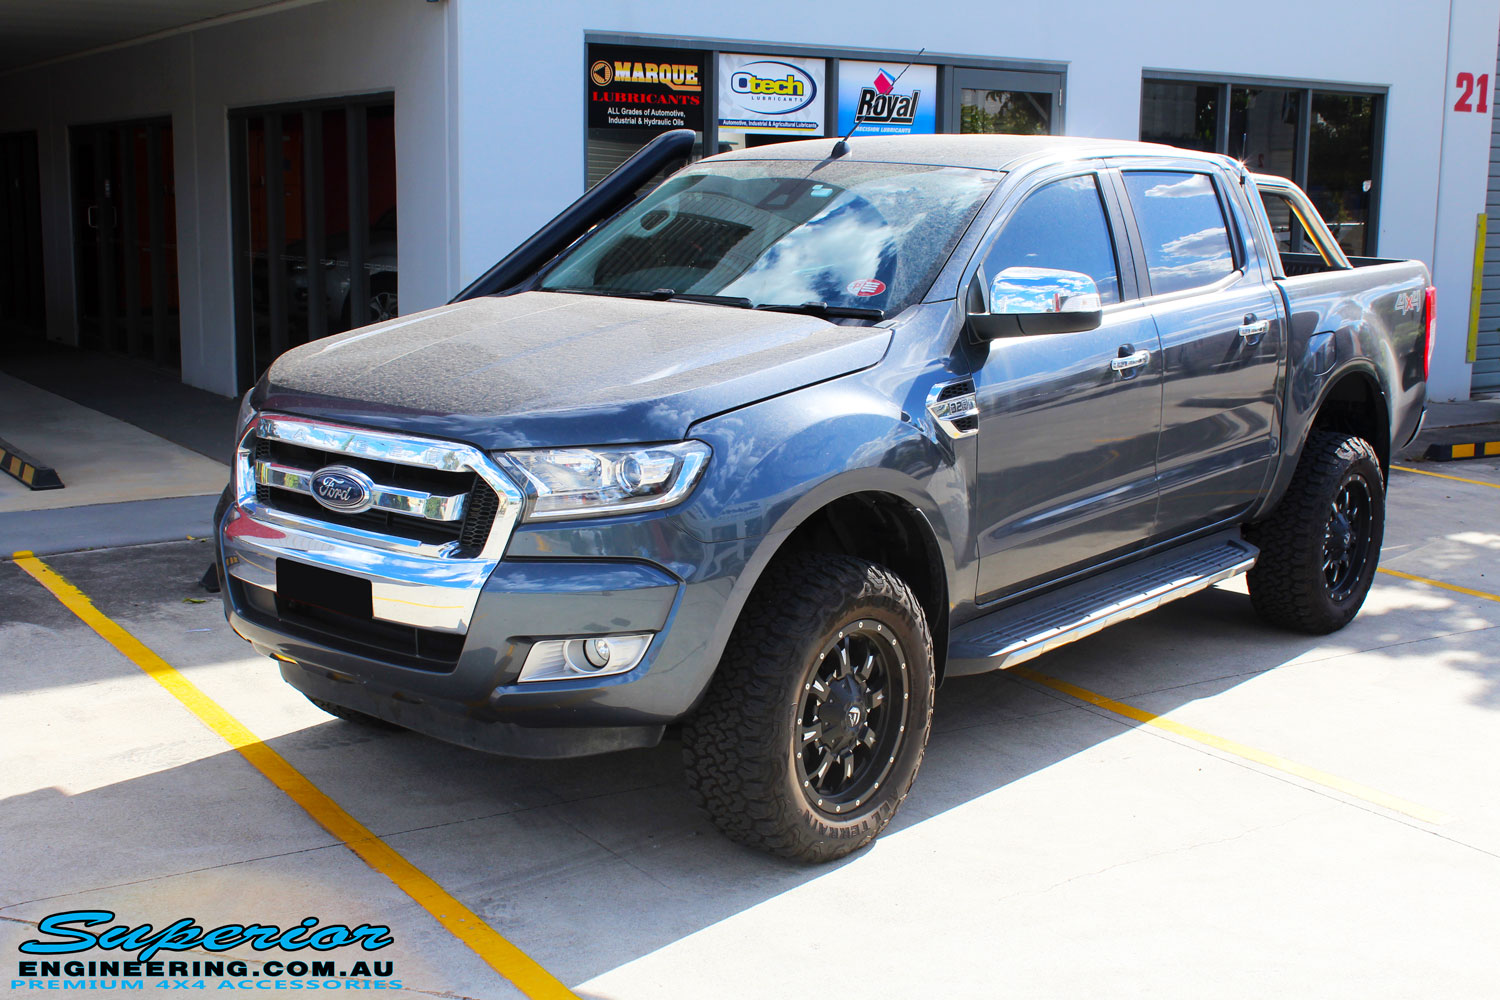 "Left front side view of a Ford PXII Ranger in Grey after fitment of a Superior 2"" Inch Remote Reservoir Lift Kit, Rhino 4x4 Evolution 3D Winch Bar + VRS Winch"